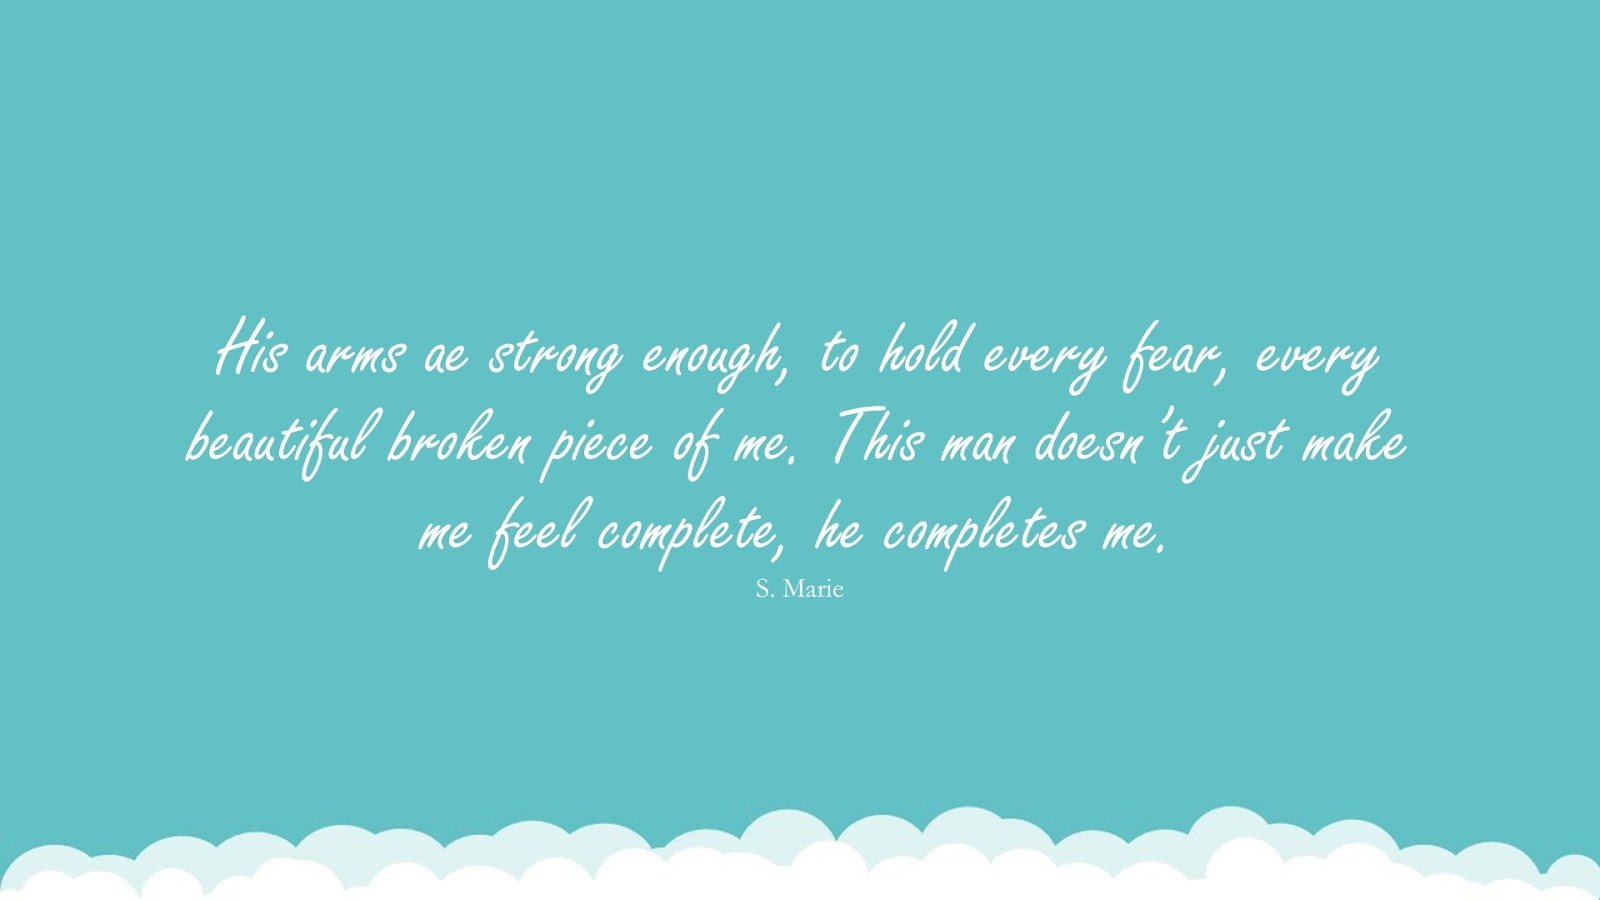 His arms ae strong enough, to hold every fear, every beautiful broken piece of me. This man doesn't just make me feel complete, he completes me. (S. Marie);  #LoveQuotes